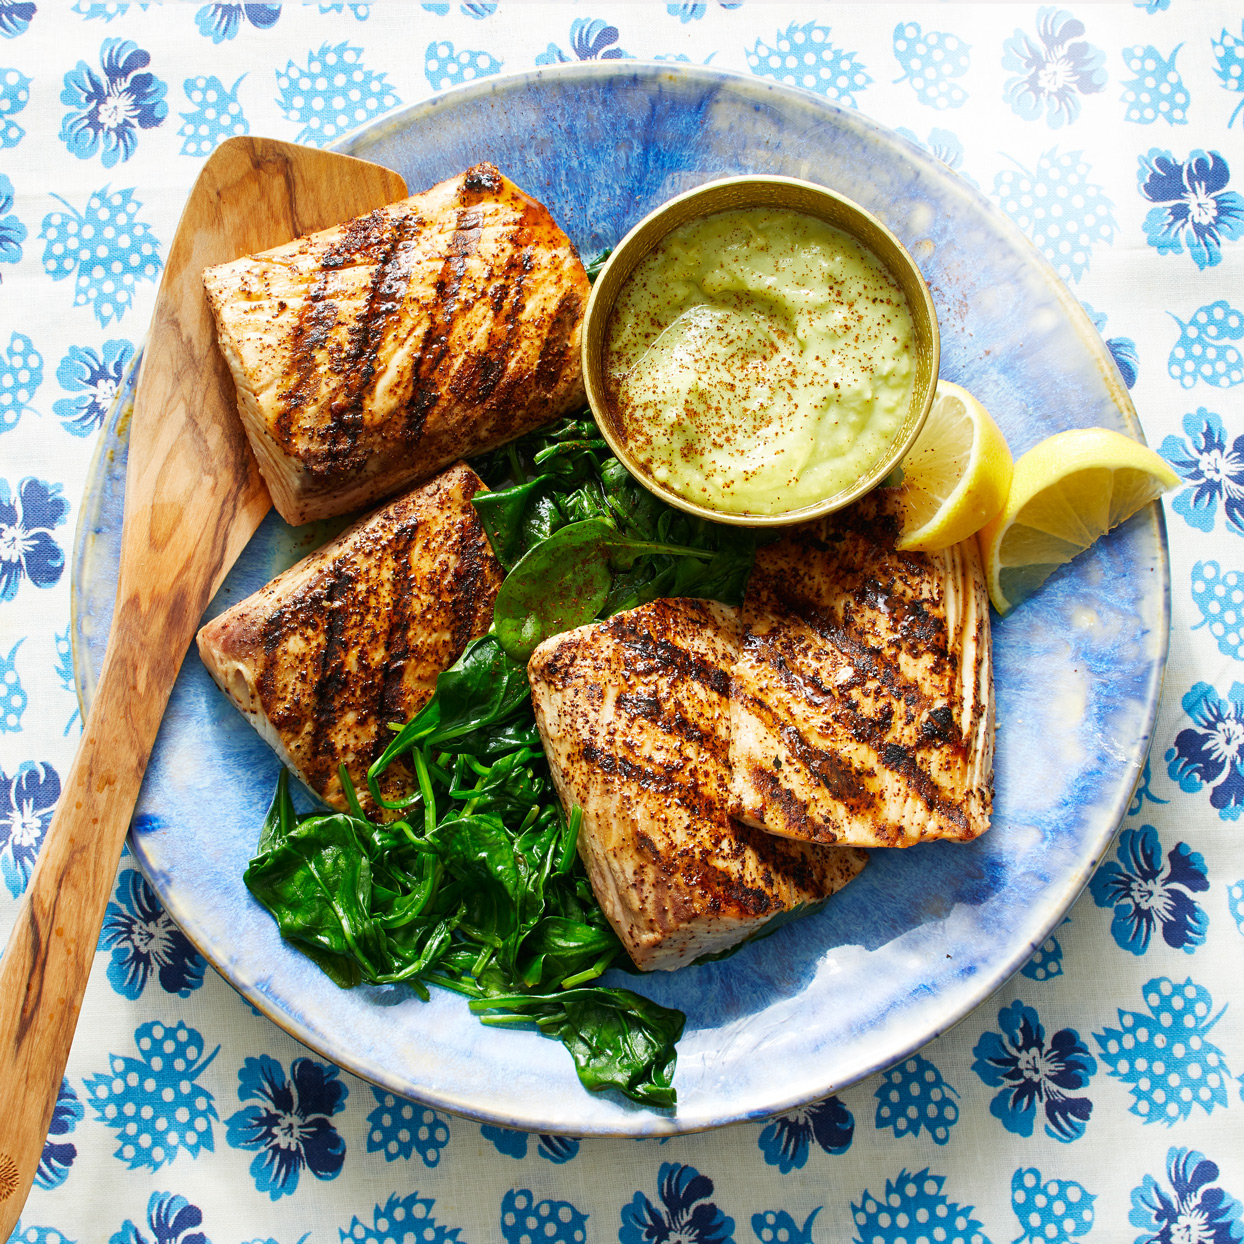 pan-grilled mahi mahi with avocado sauce